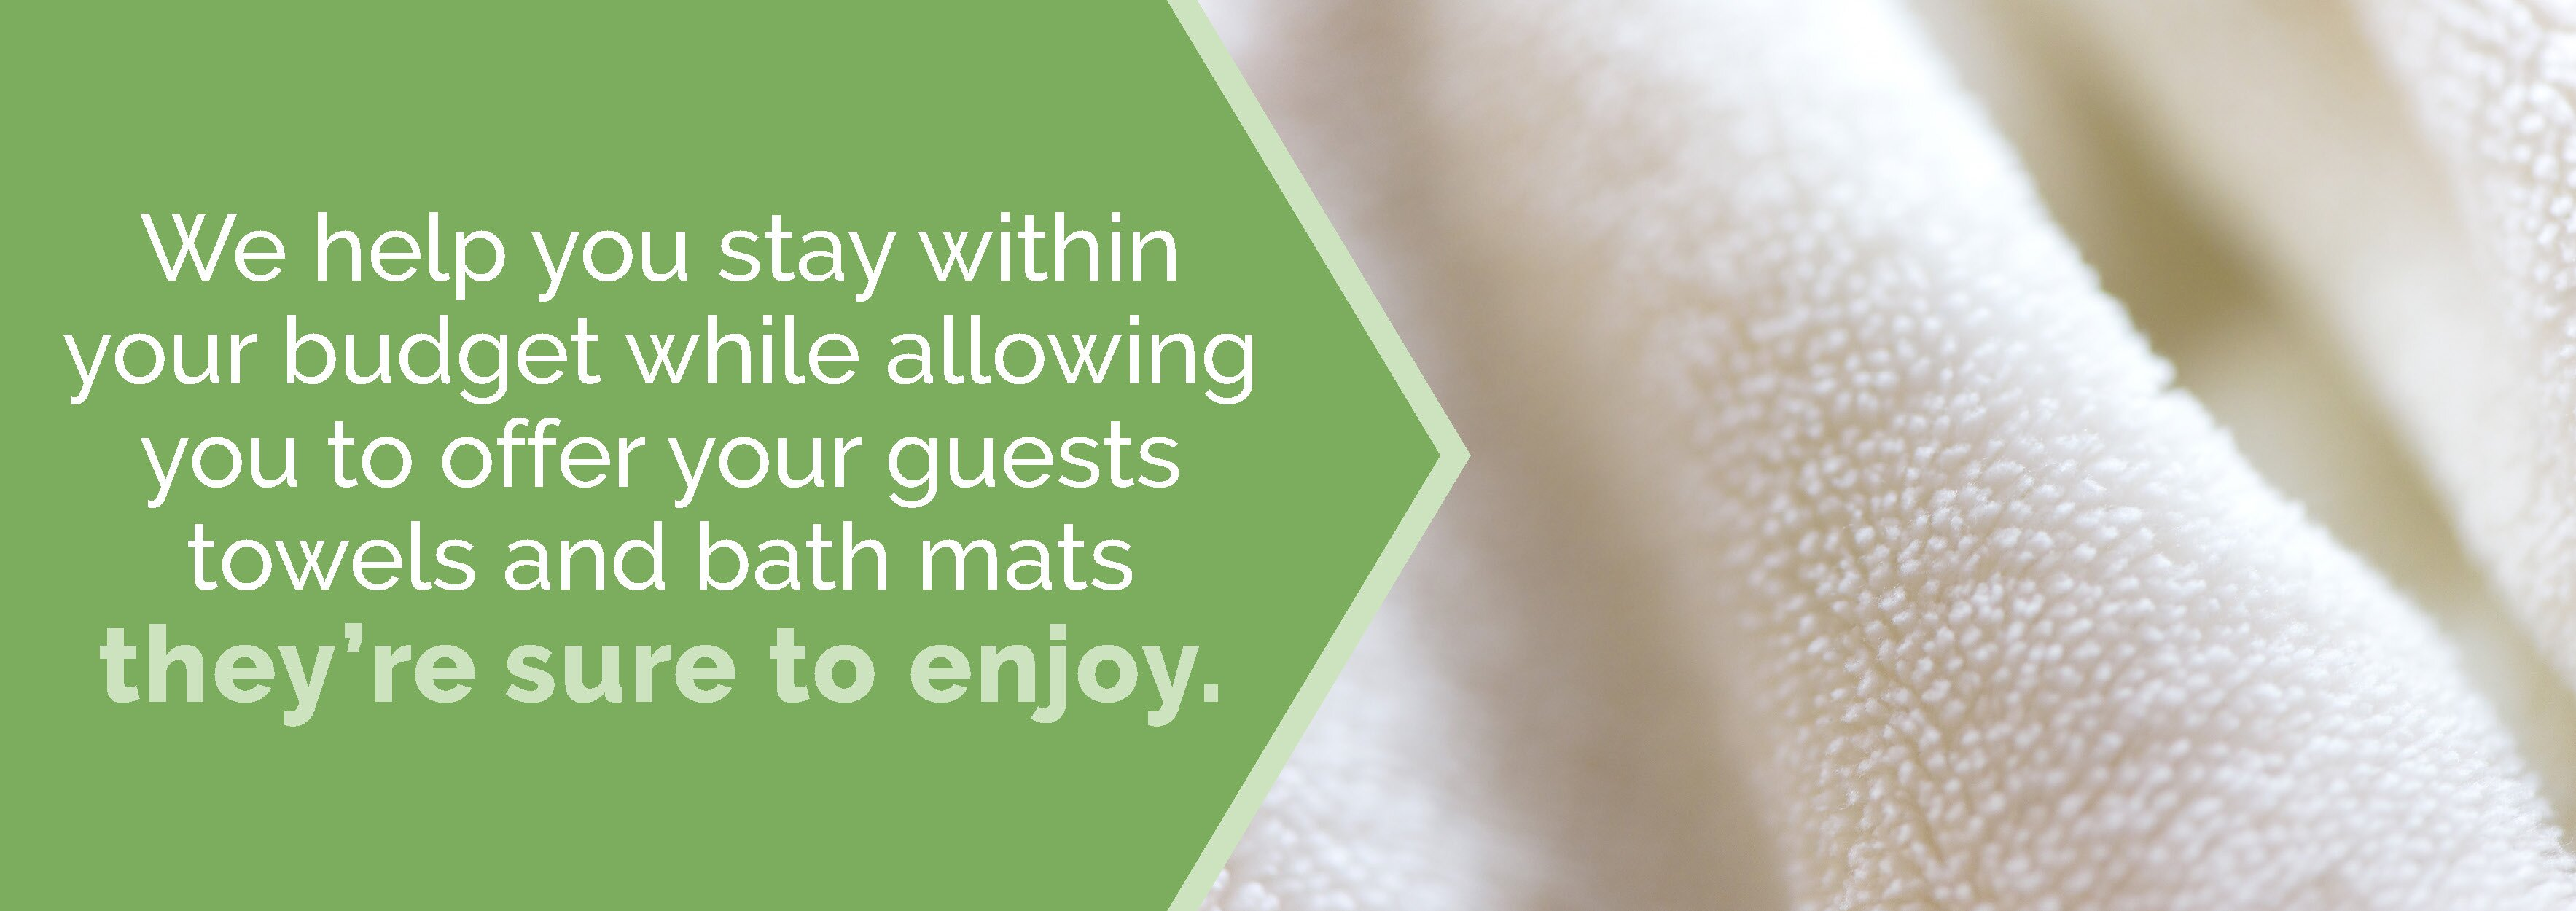 Stay within budget while offering guests towels and bath mats they're sure to enjoy.